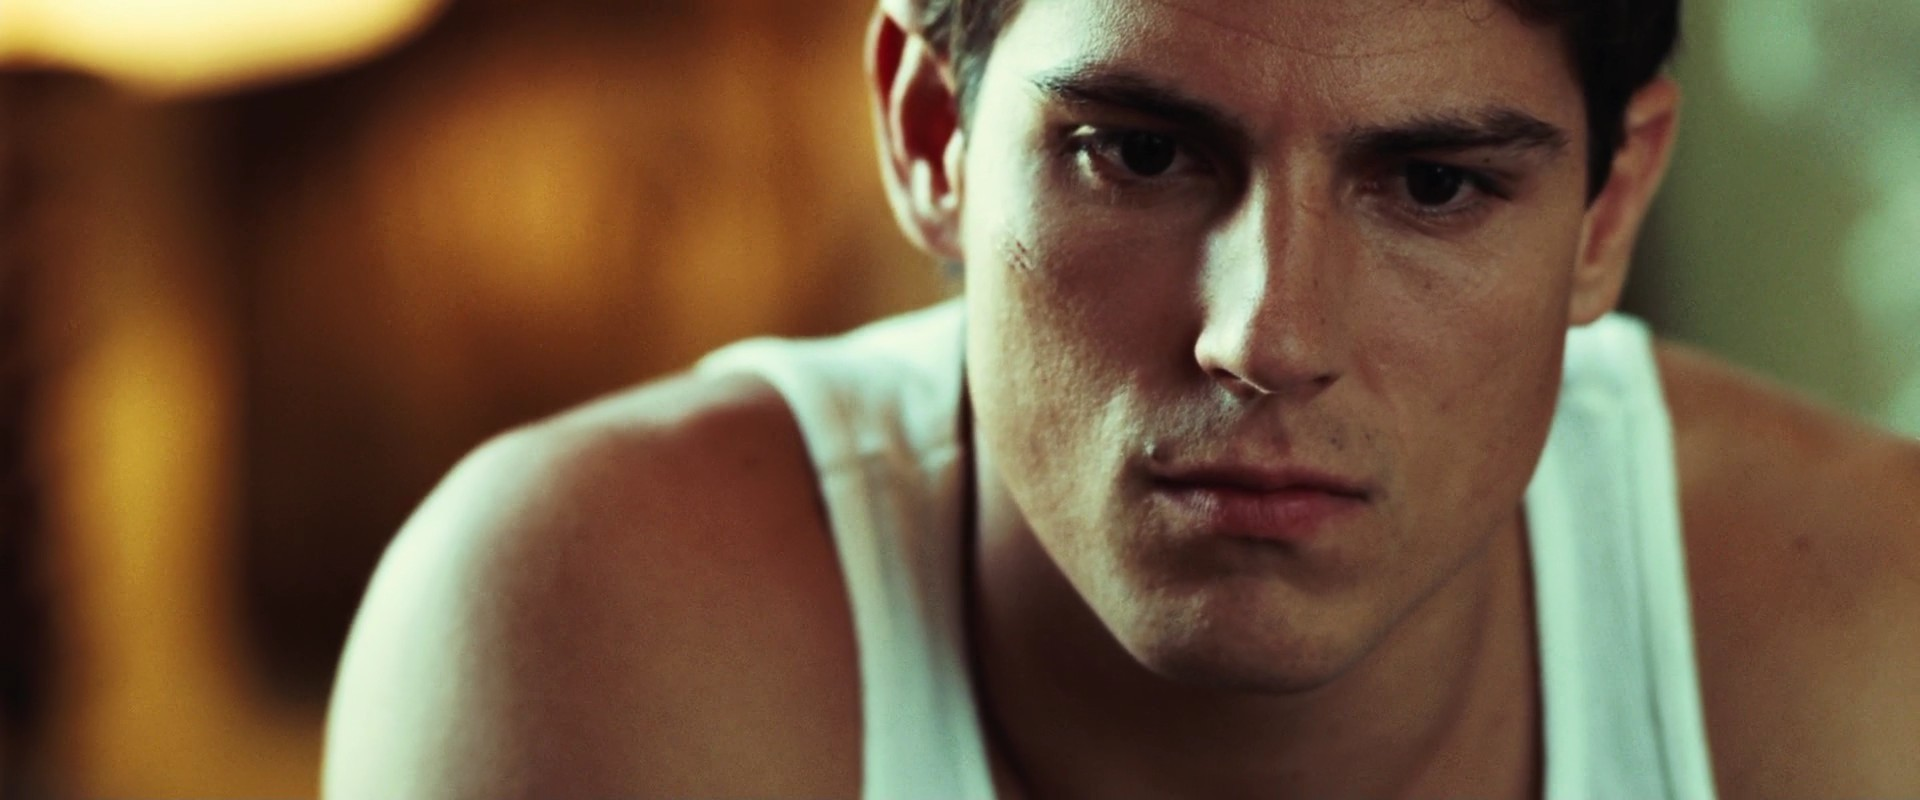 Never Back Down - Sean Faris Image (20046600) - Fanpop